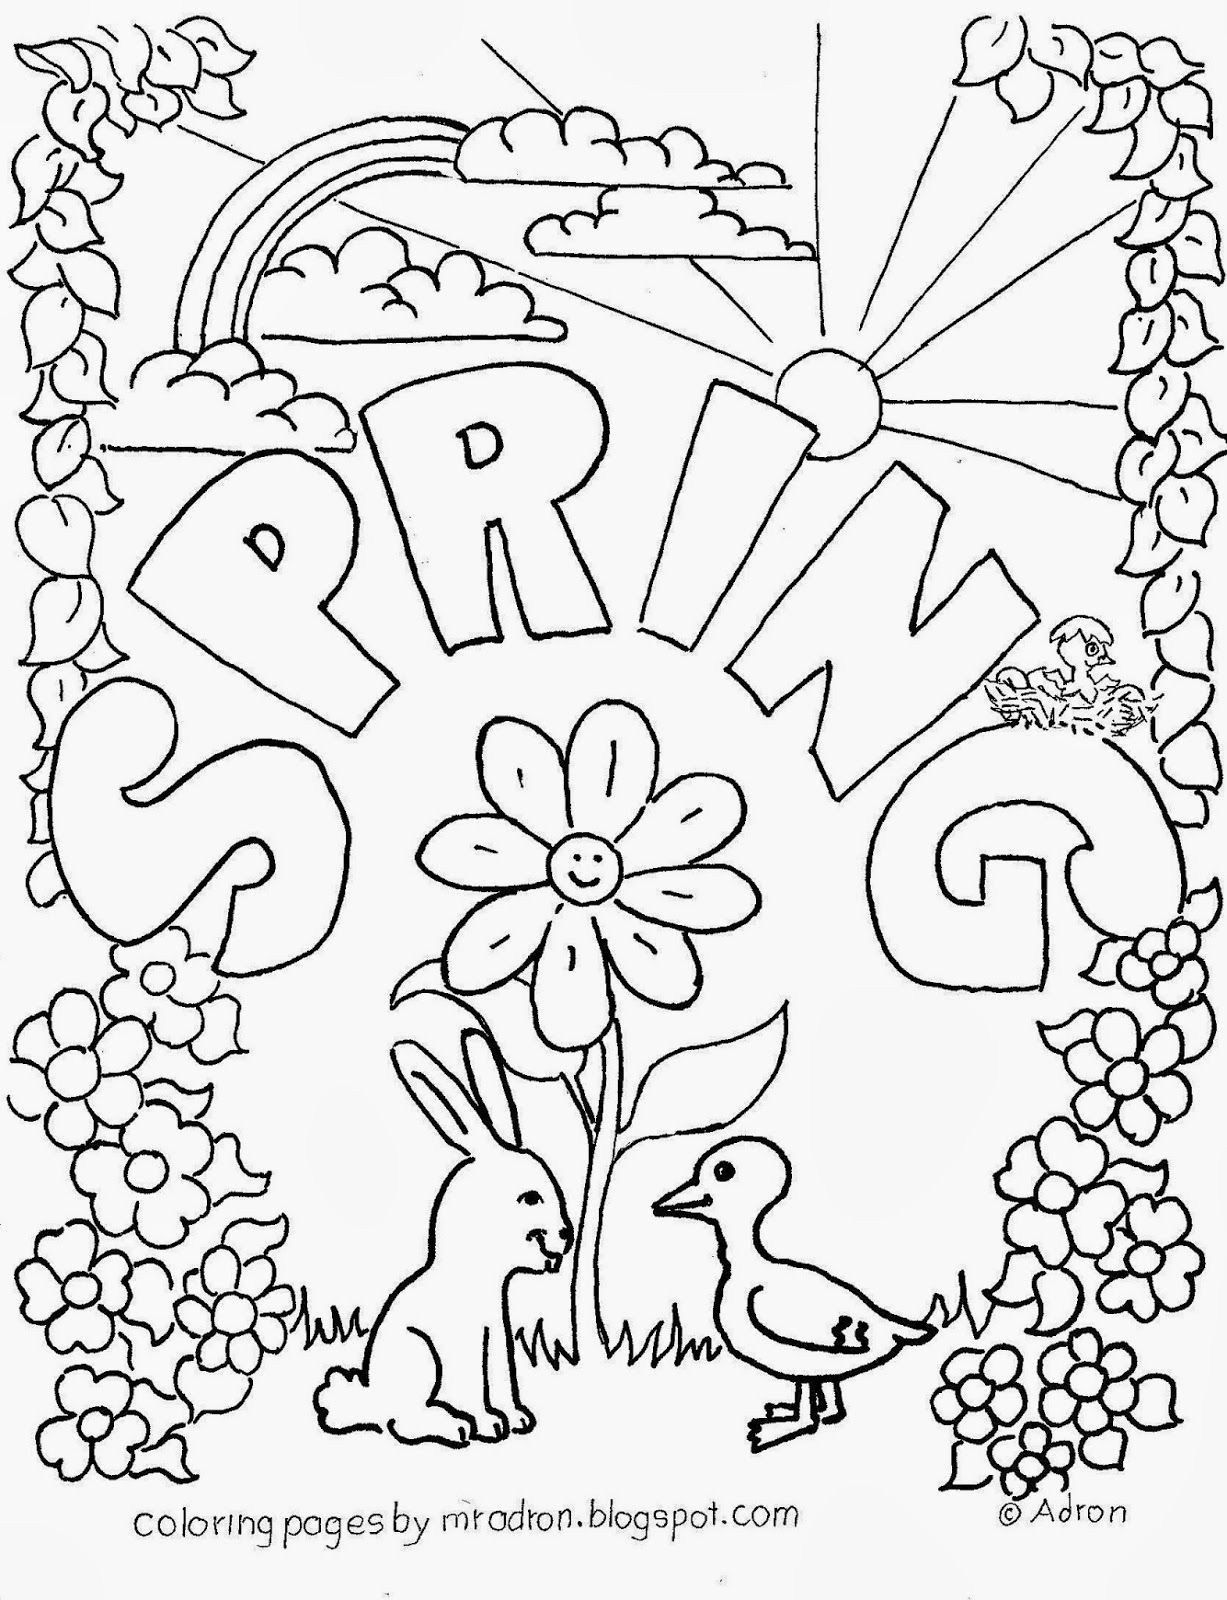 spring nature coloring pages spring landscape drawing at getdrawings free download nature coloring pages spring